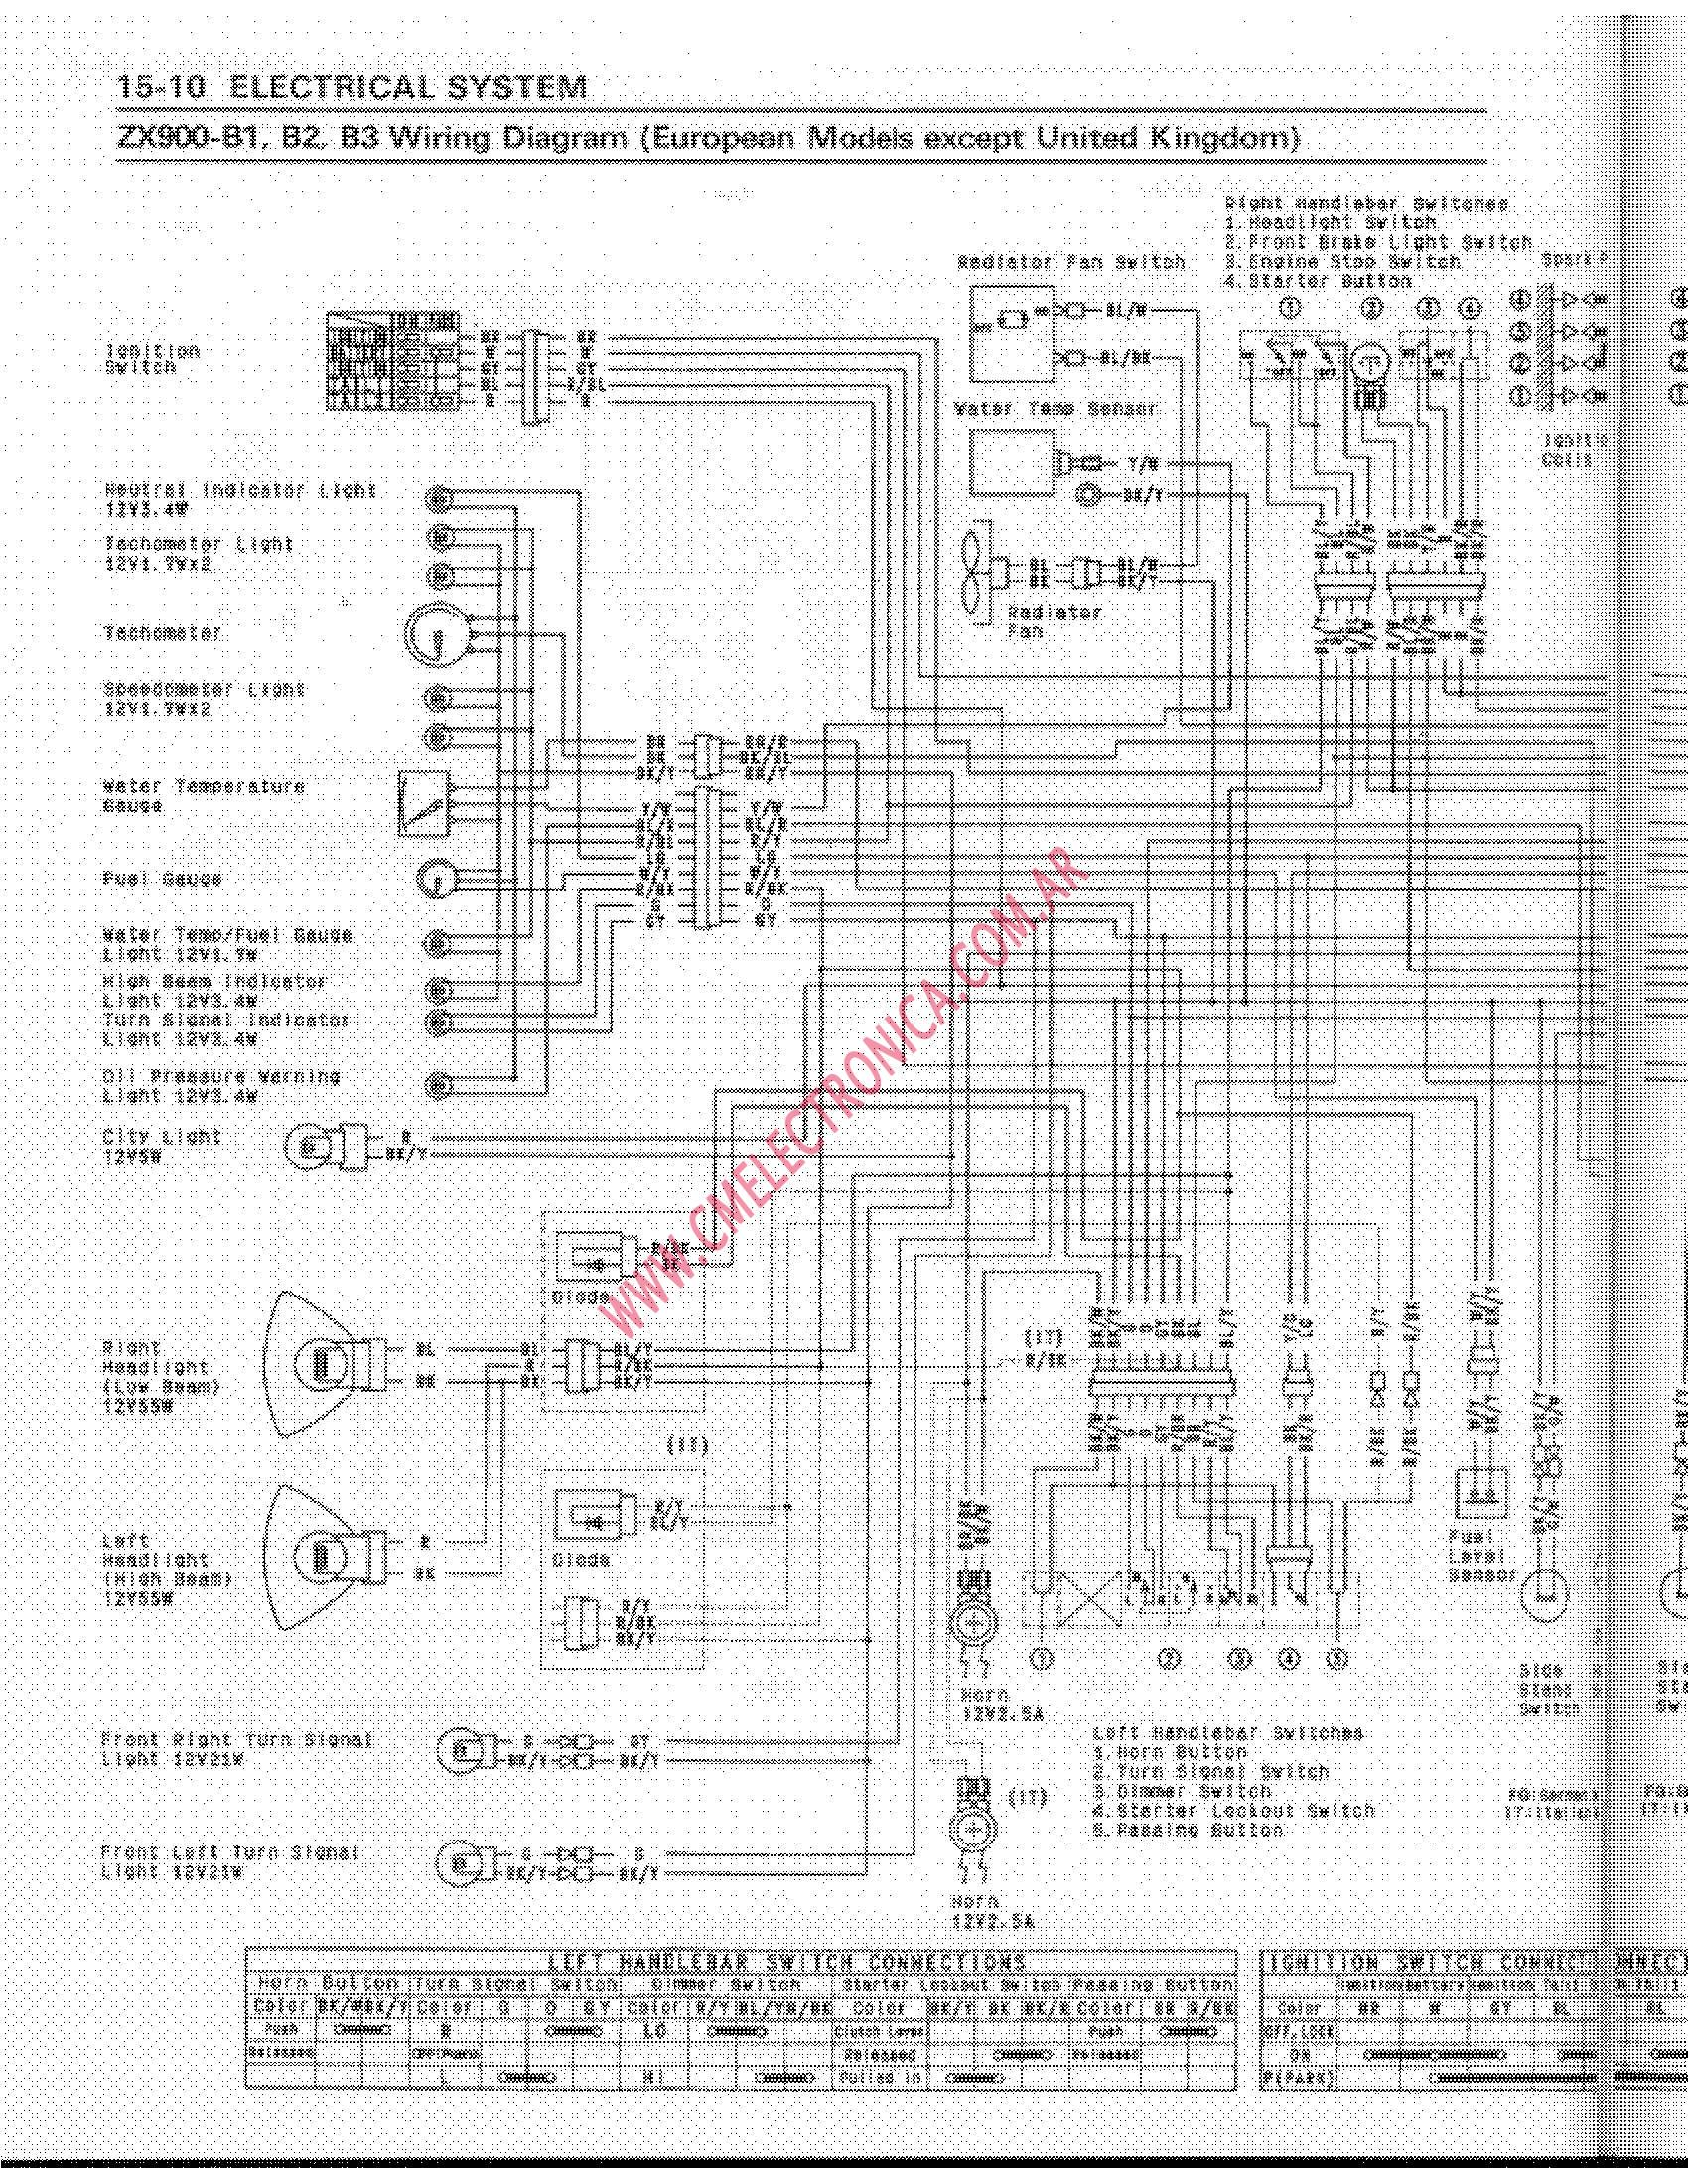 Wiring Diagram For Zx9r | 2003 Kawasaki Zx9r Wiring Diagram |  | Wiring Diagram